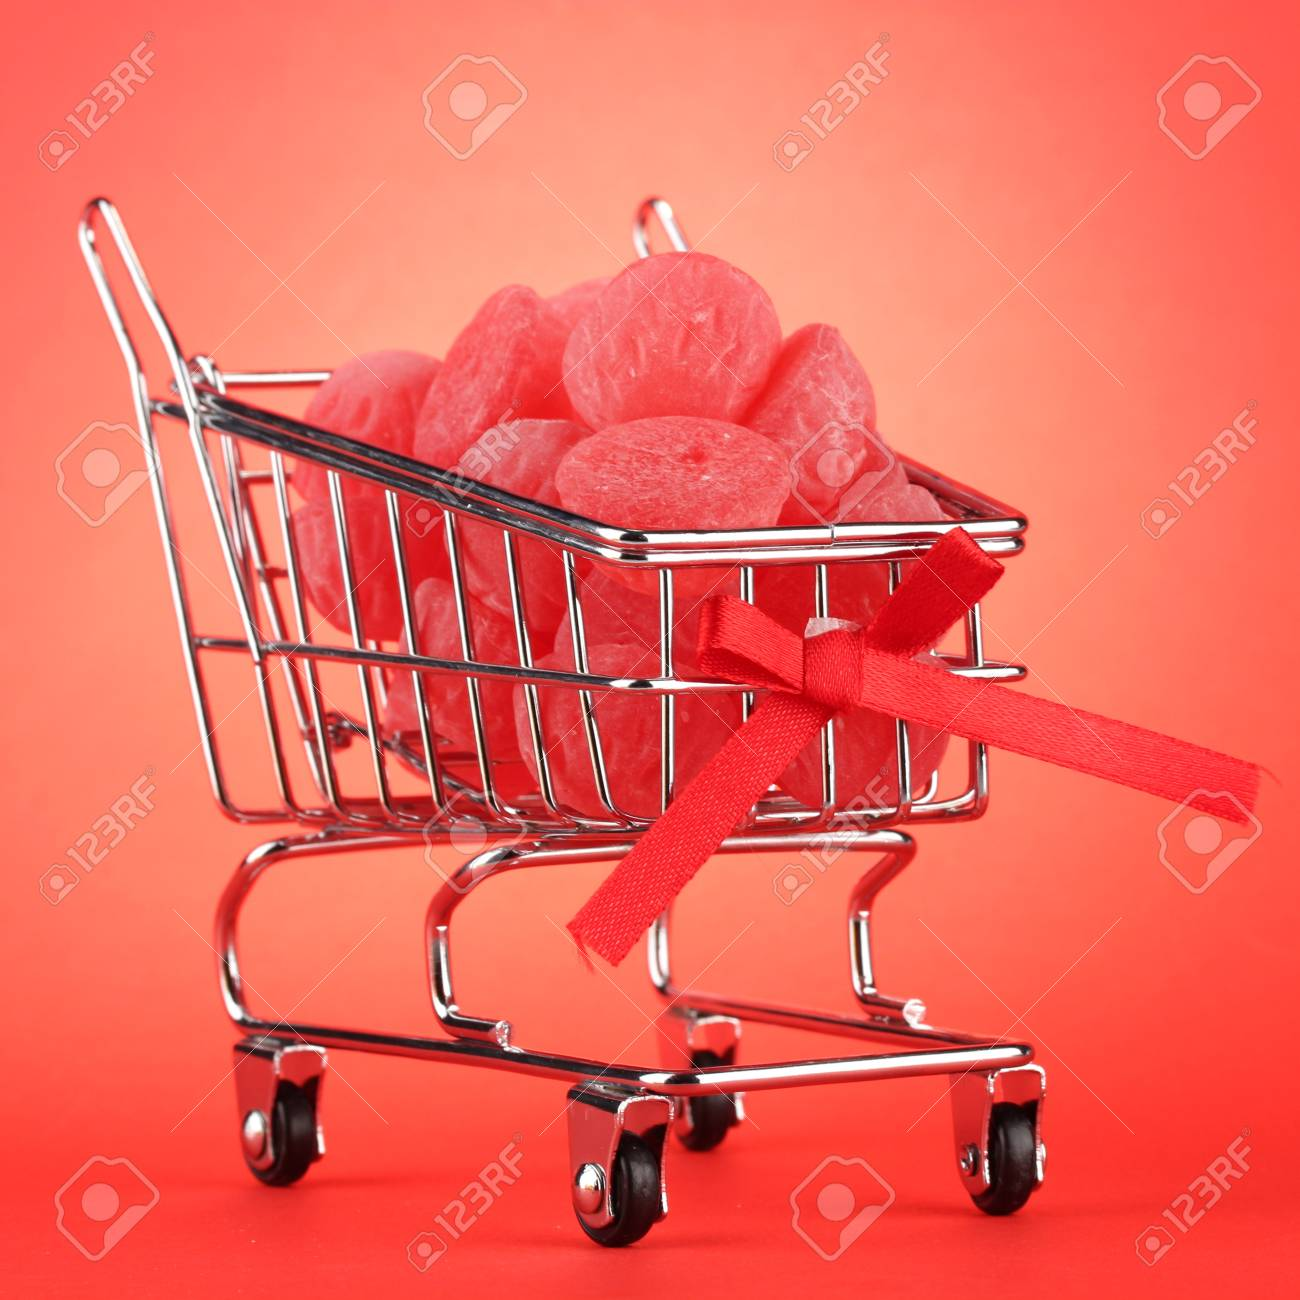 shopping trolley with jelly candies, on red background Stock Photo - 15898229